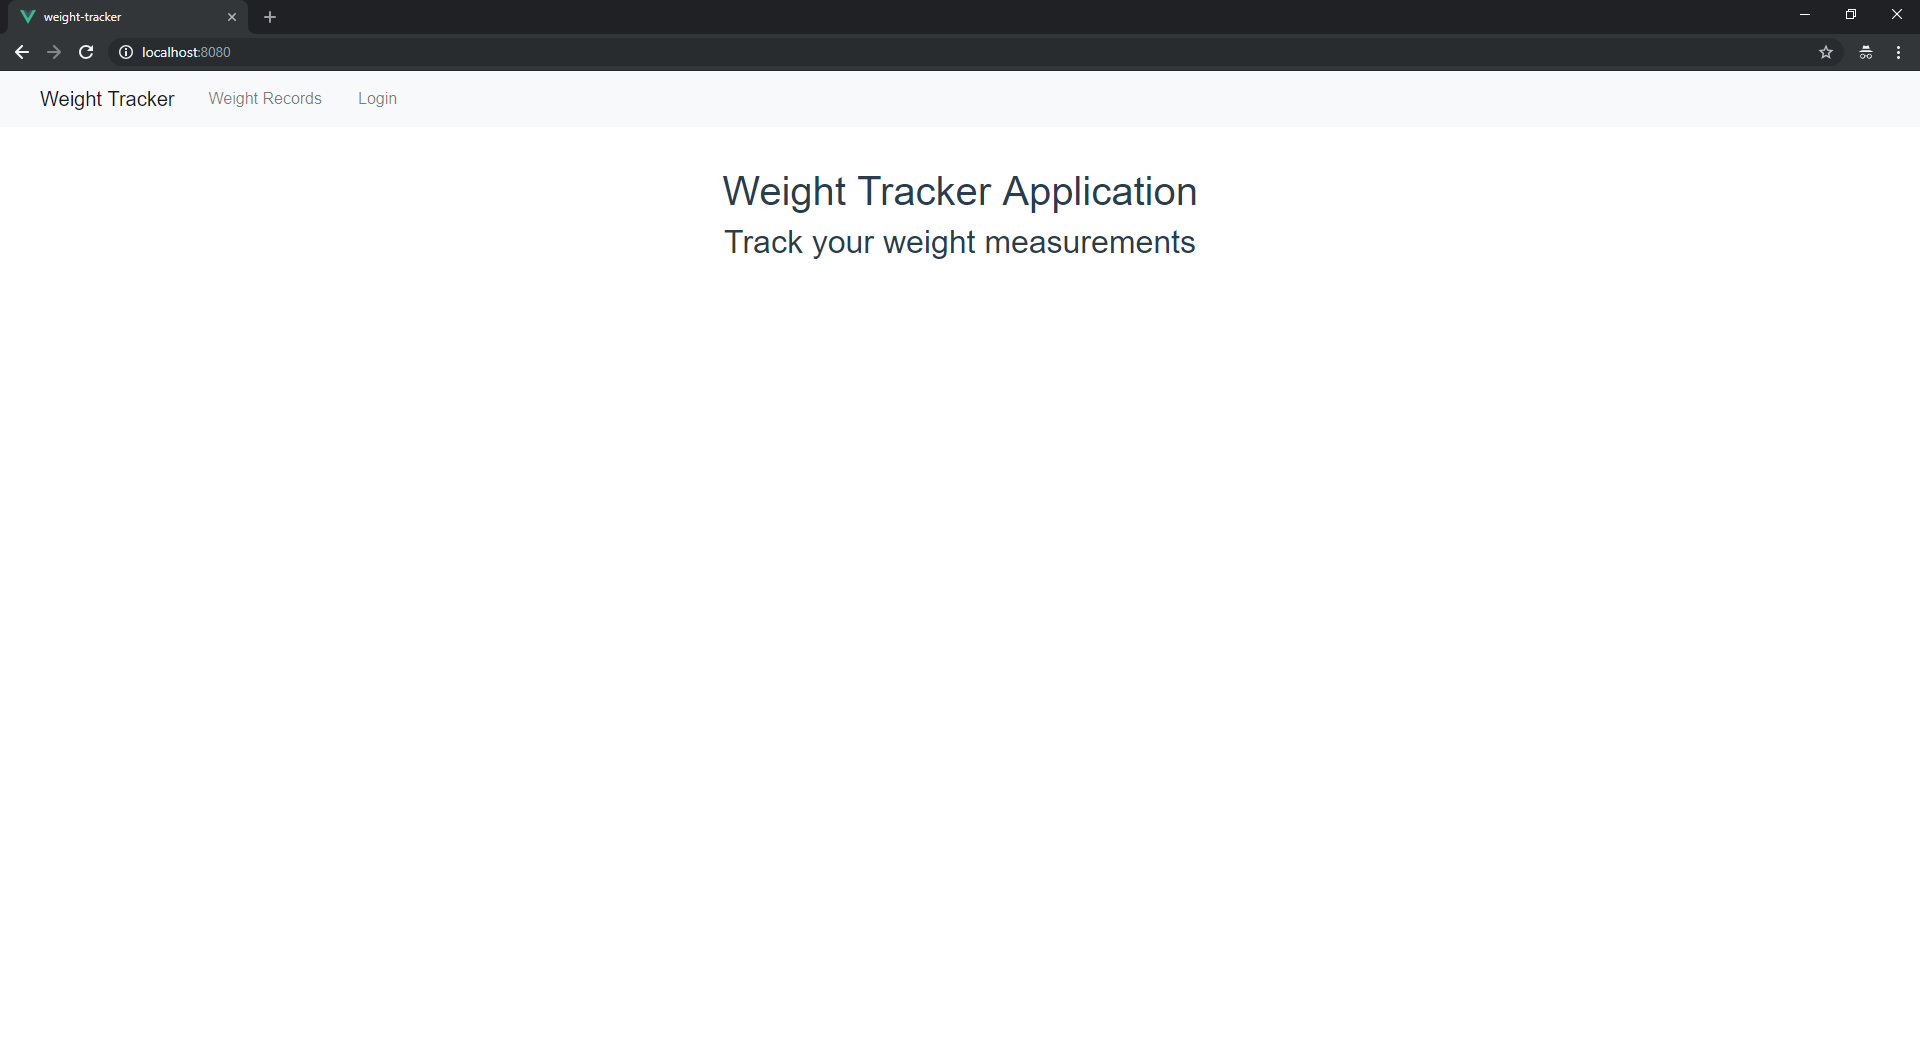 Weight tracker home page